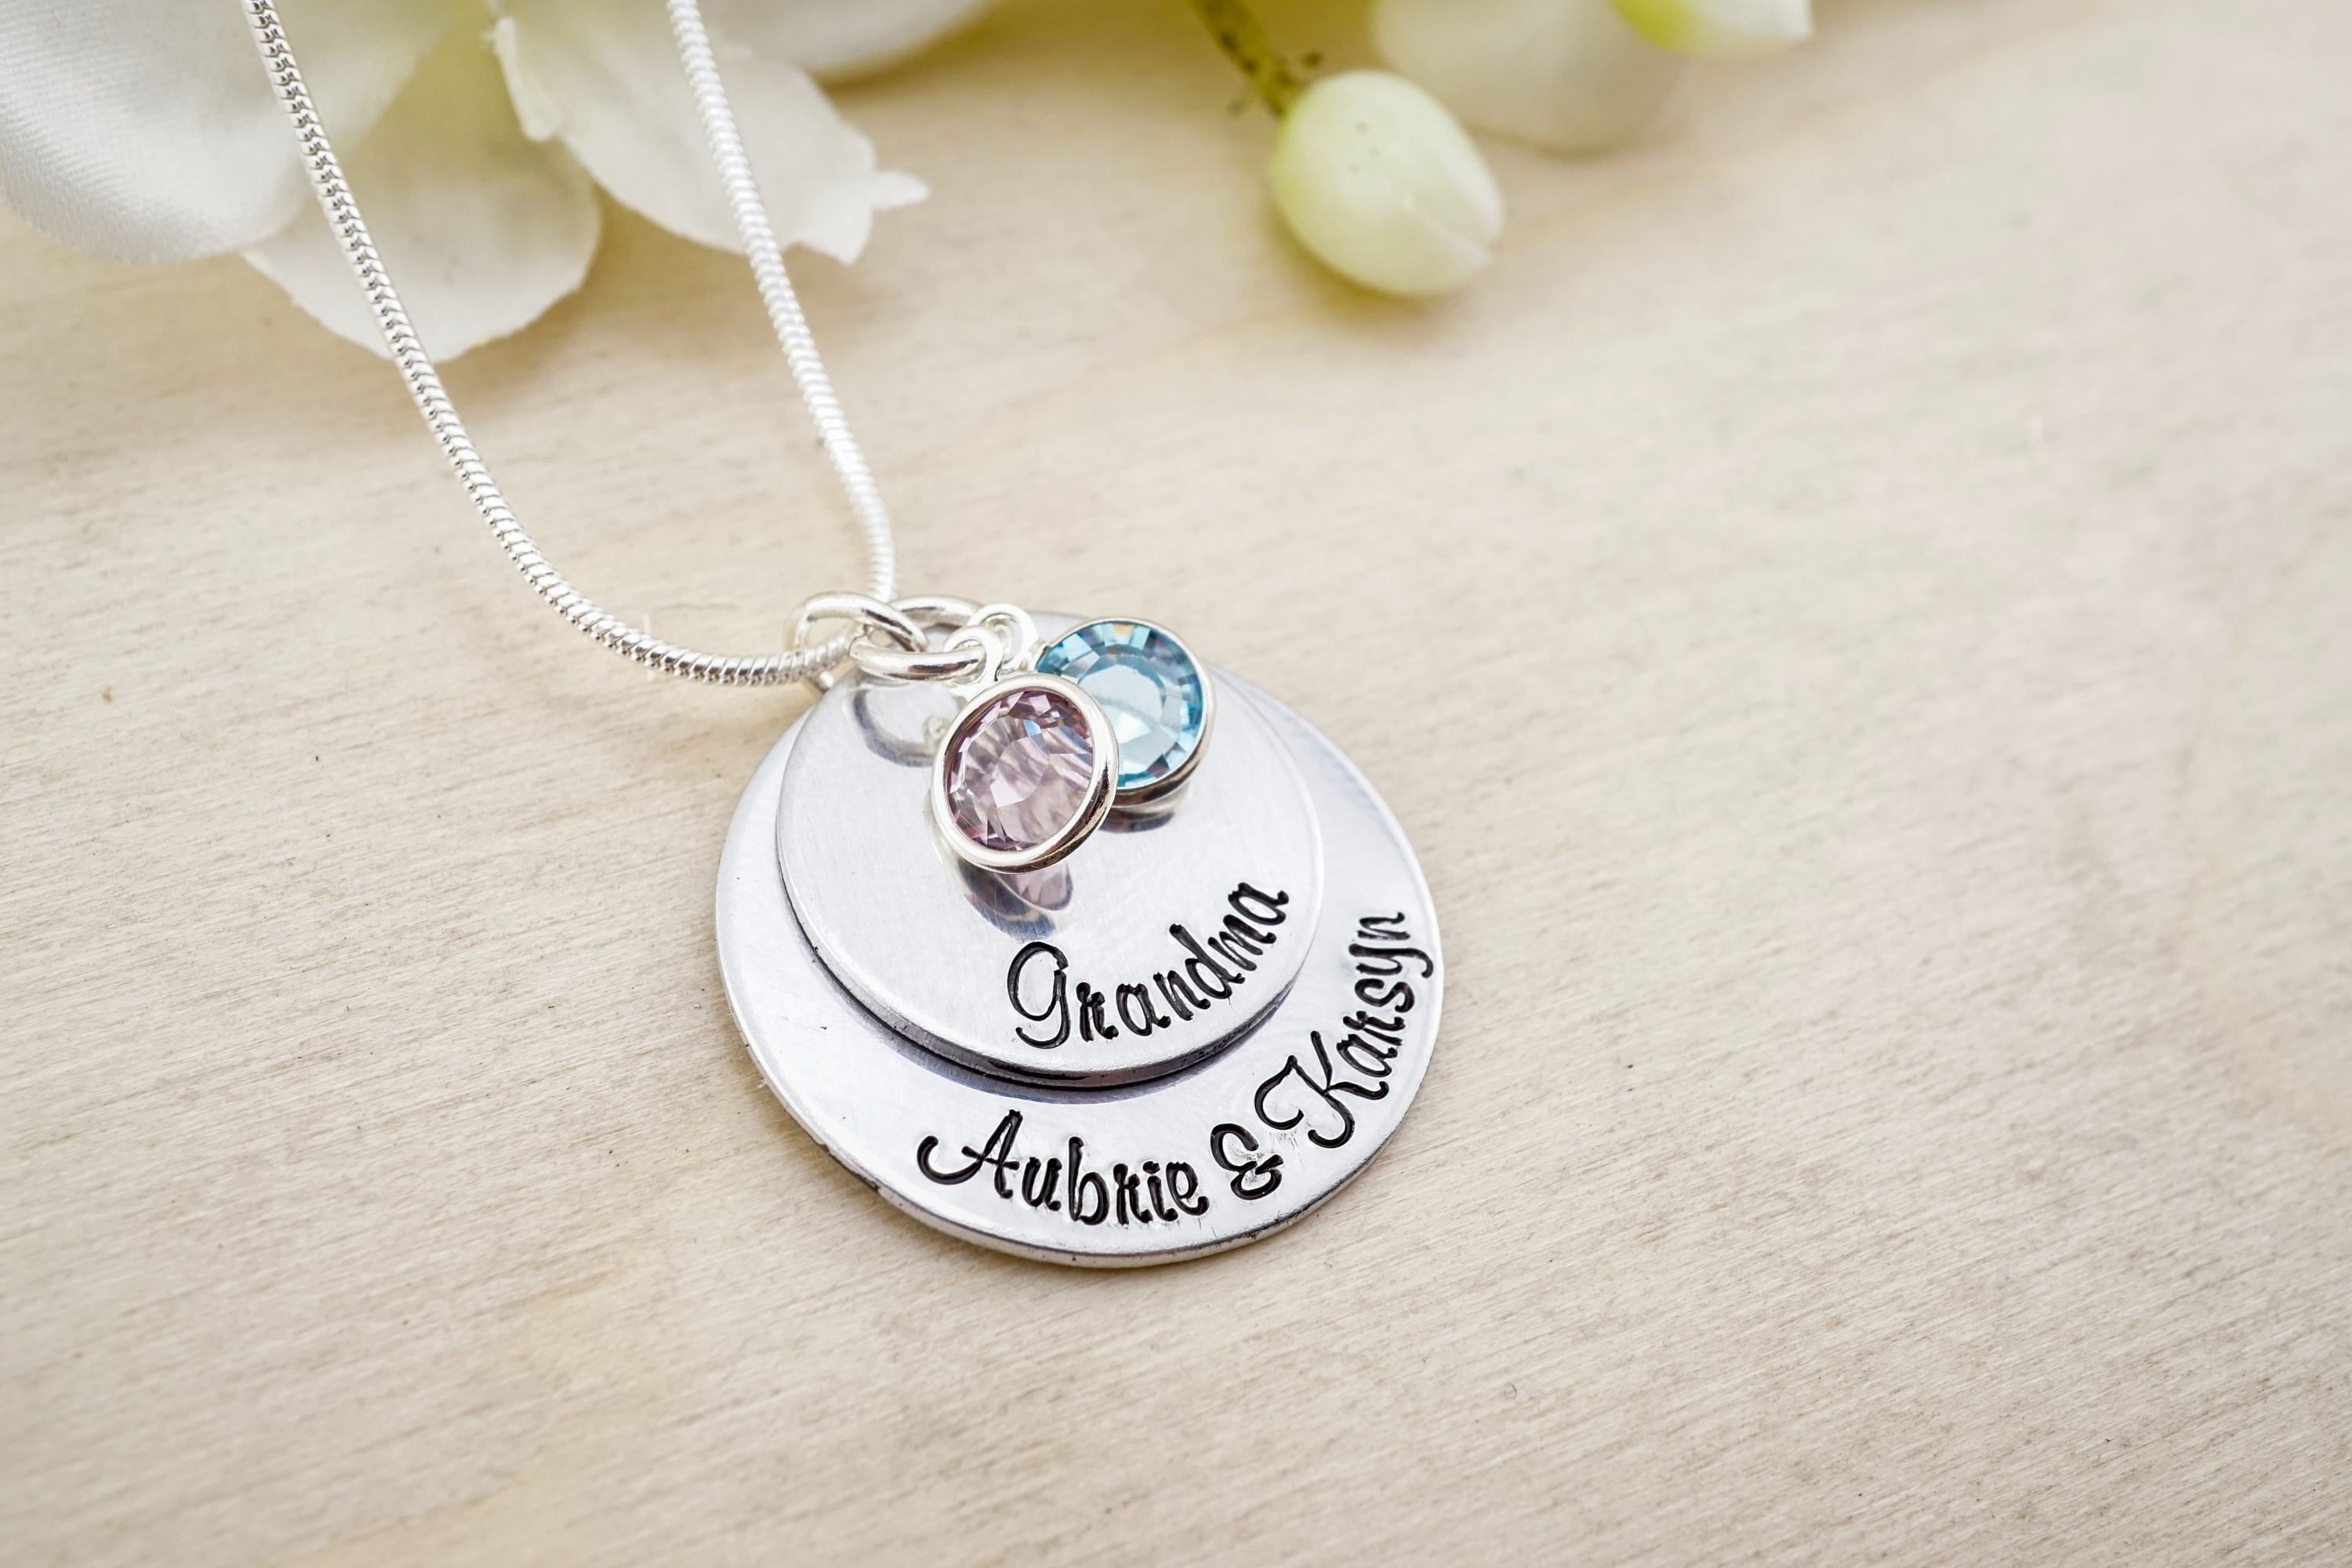 kids pendants handmade dp stamped and initial necklace for birthstone grandkid com with tdwlv or grandma grandkids amazon hand charms